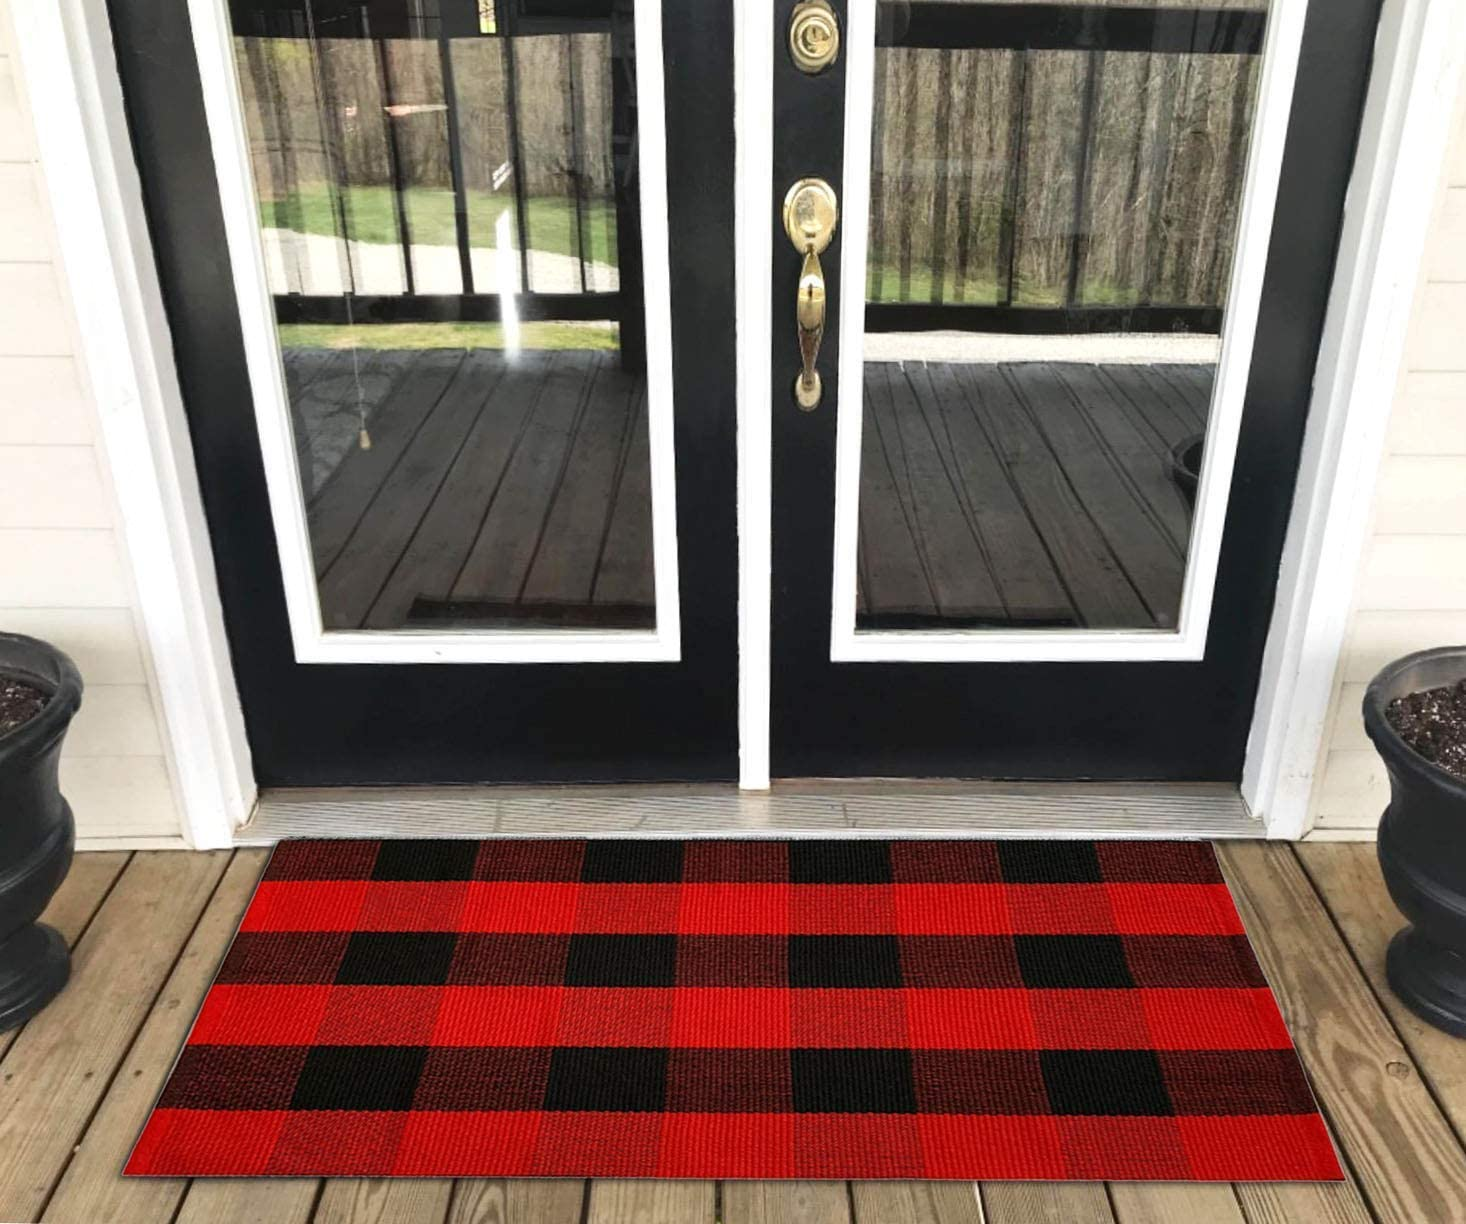 "Buffalo Plaid Rug - YHOUSE Checkered Indoor/Outdoor Door Mat Outdoor Doormat for Front Porch/Kitchen/Laundry Room Welcome Layered Mat (23.6""X35.4"", Red and Black Plaid)"